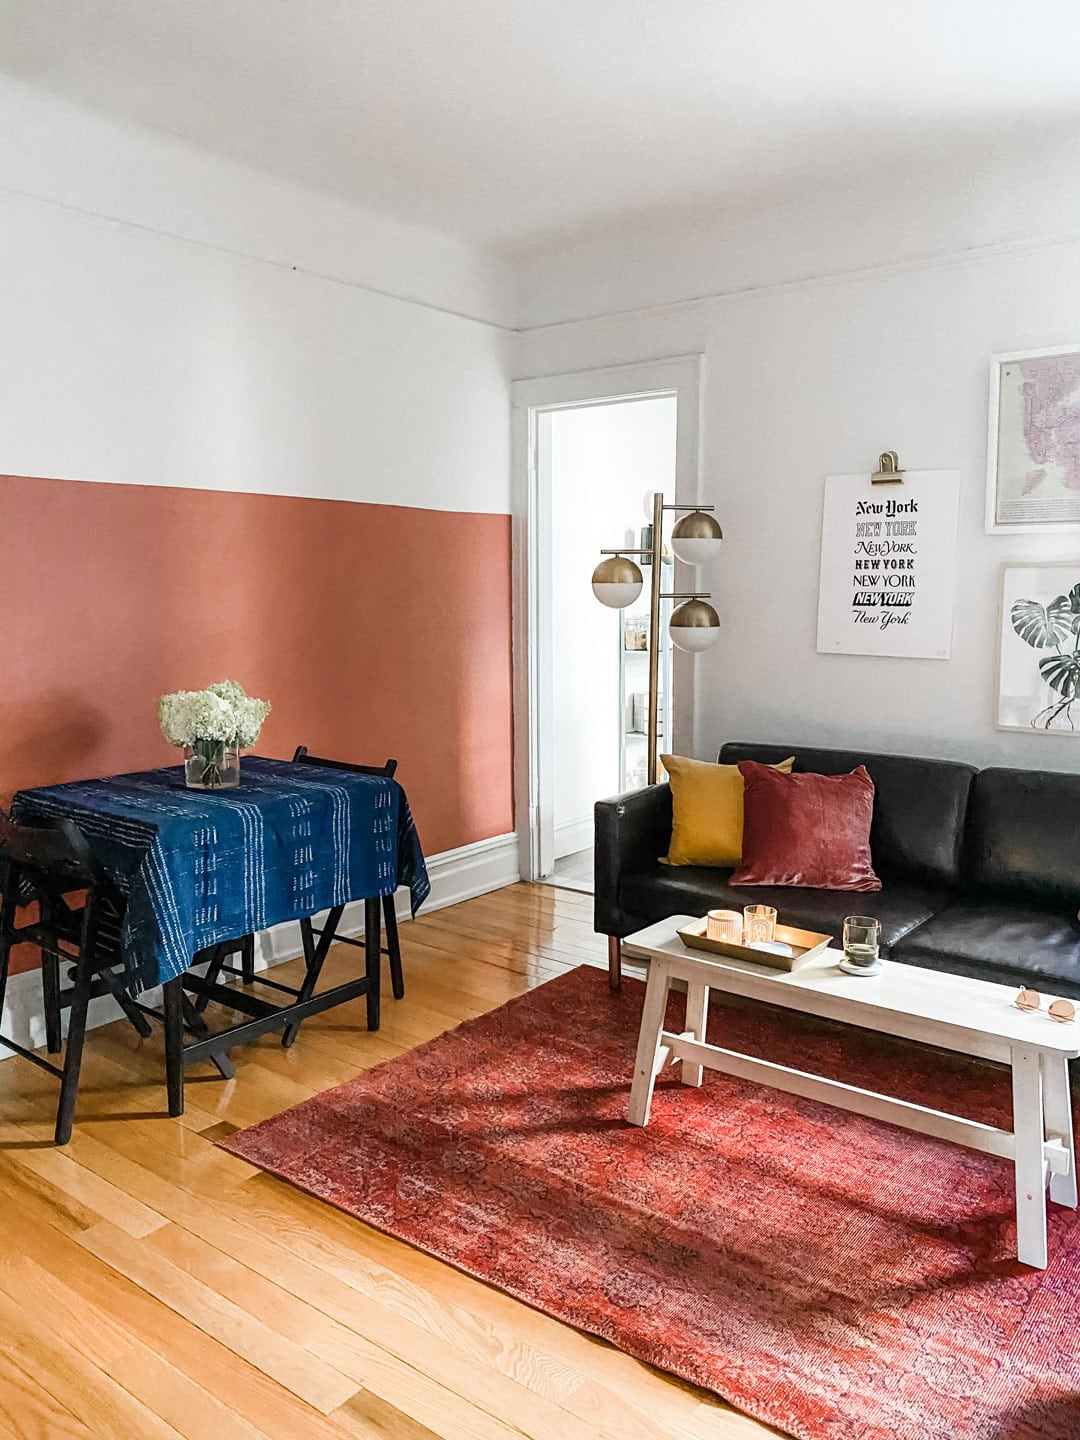 Lifestyle blogger Annie Diamond shares her daughters apartment in Brooklyn.